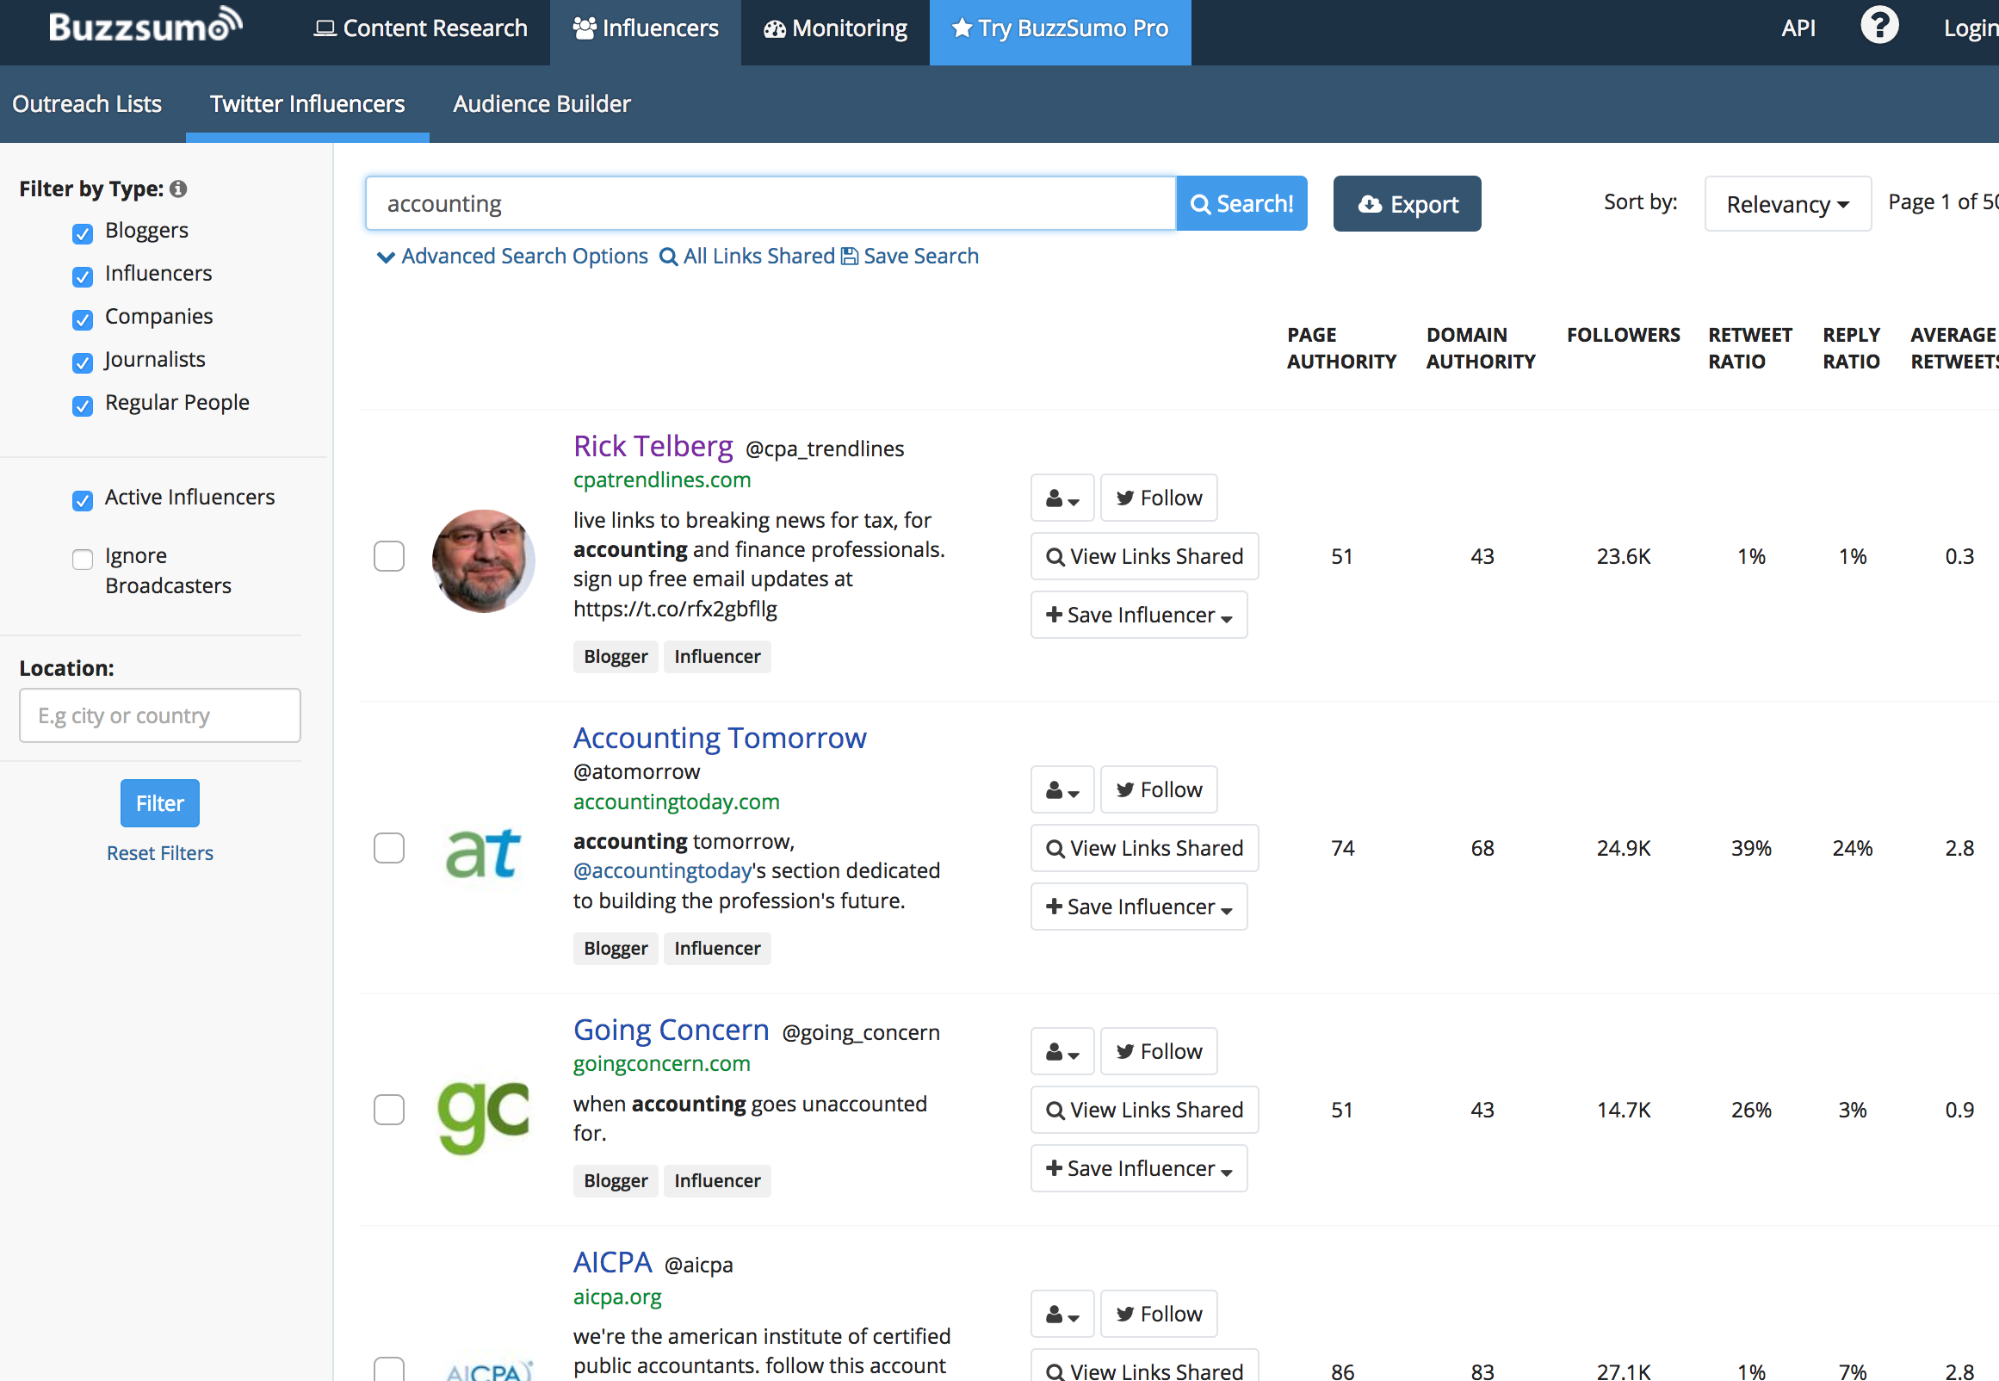 Searching for Influencers by Keyword in BuzzSumo